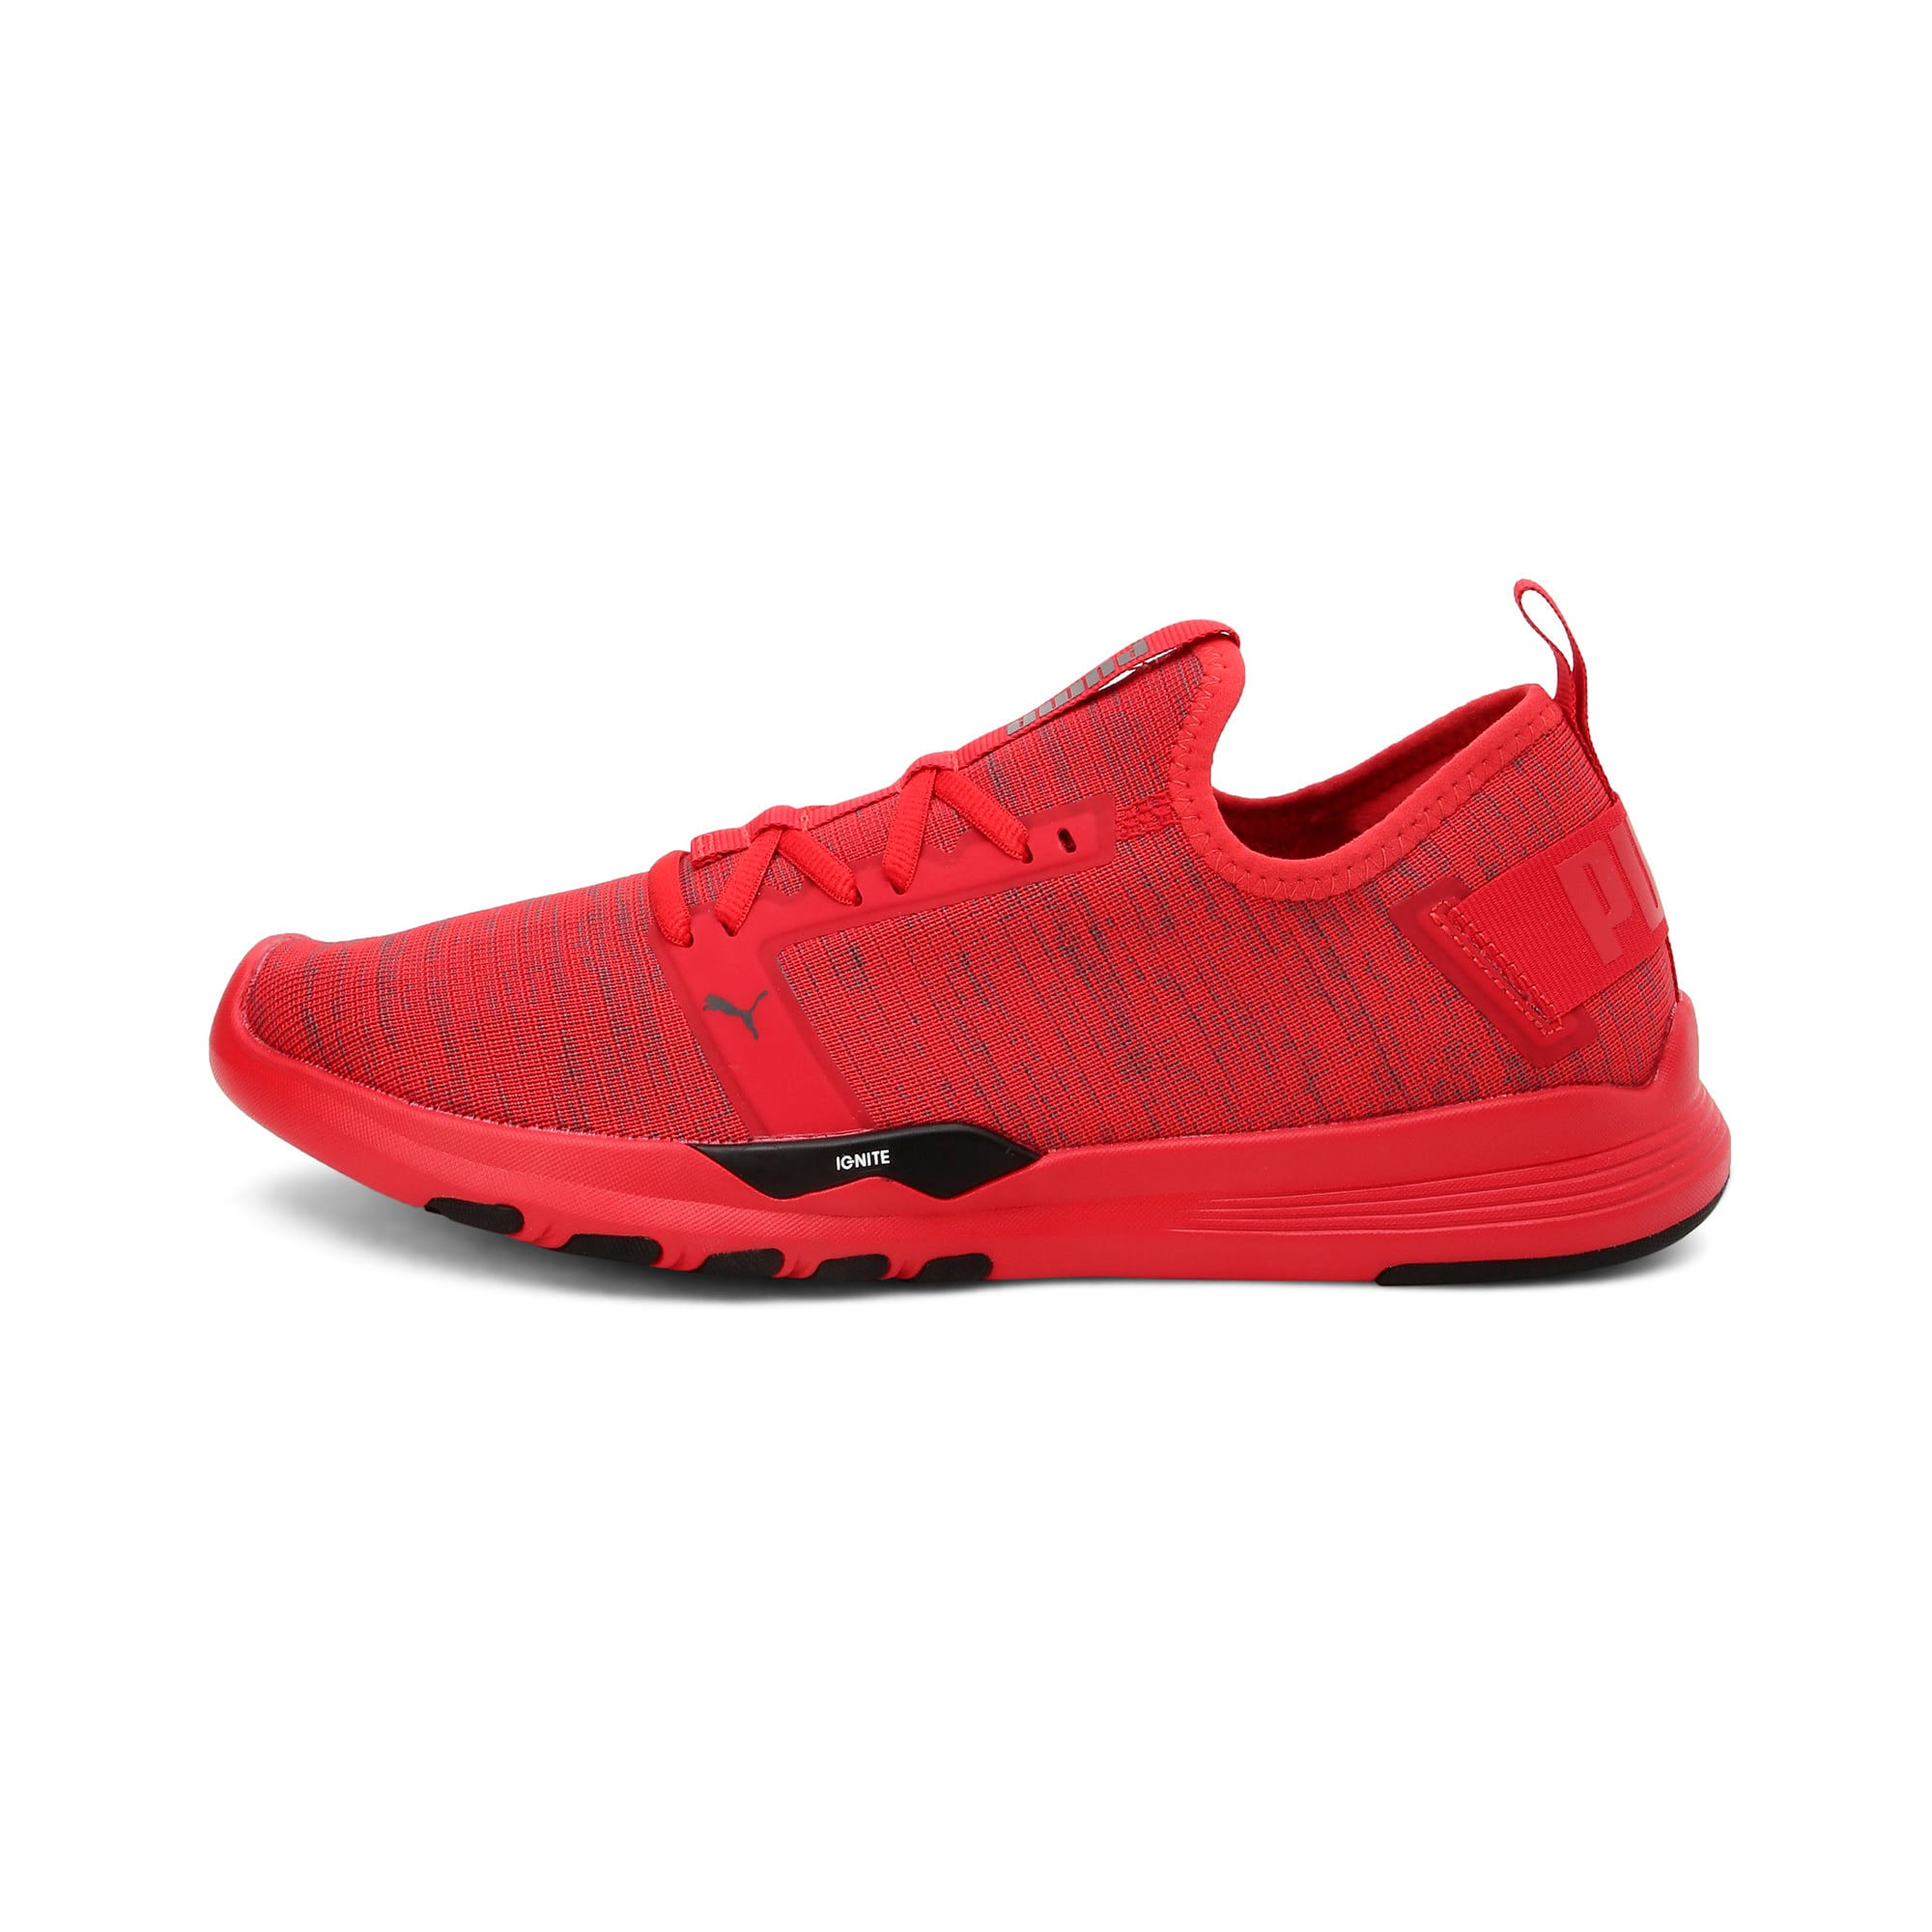 Thumbnail 1 of IGNITE Contender Knit Men's Running Shoes, Ribbon Red-Puma Black, medium-IND